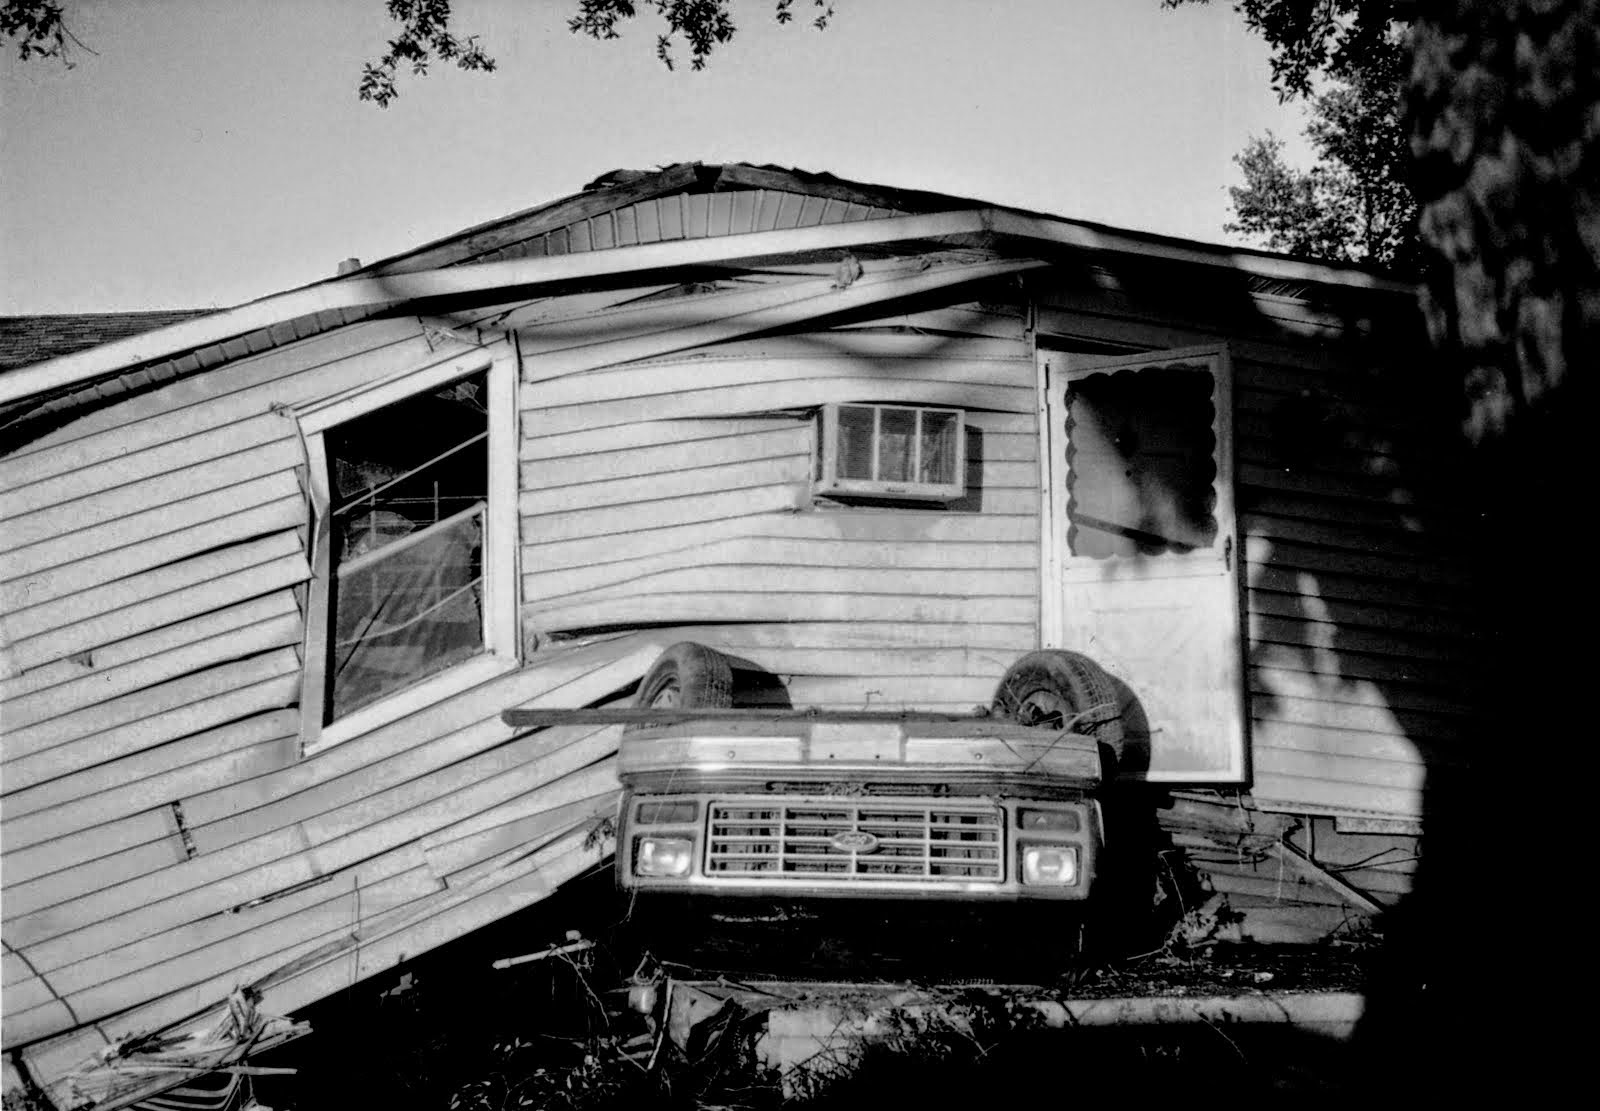 A damaged house in the Ninth Ward of New Orleans after Hurricane Katrina hit the city in 2005.